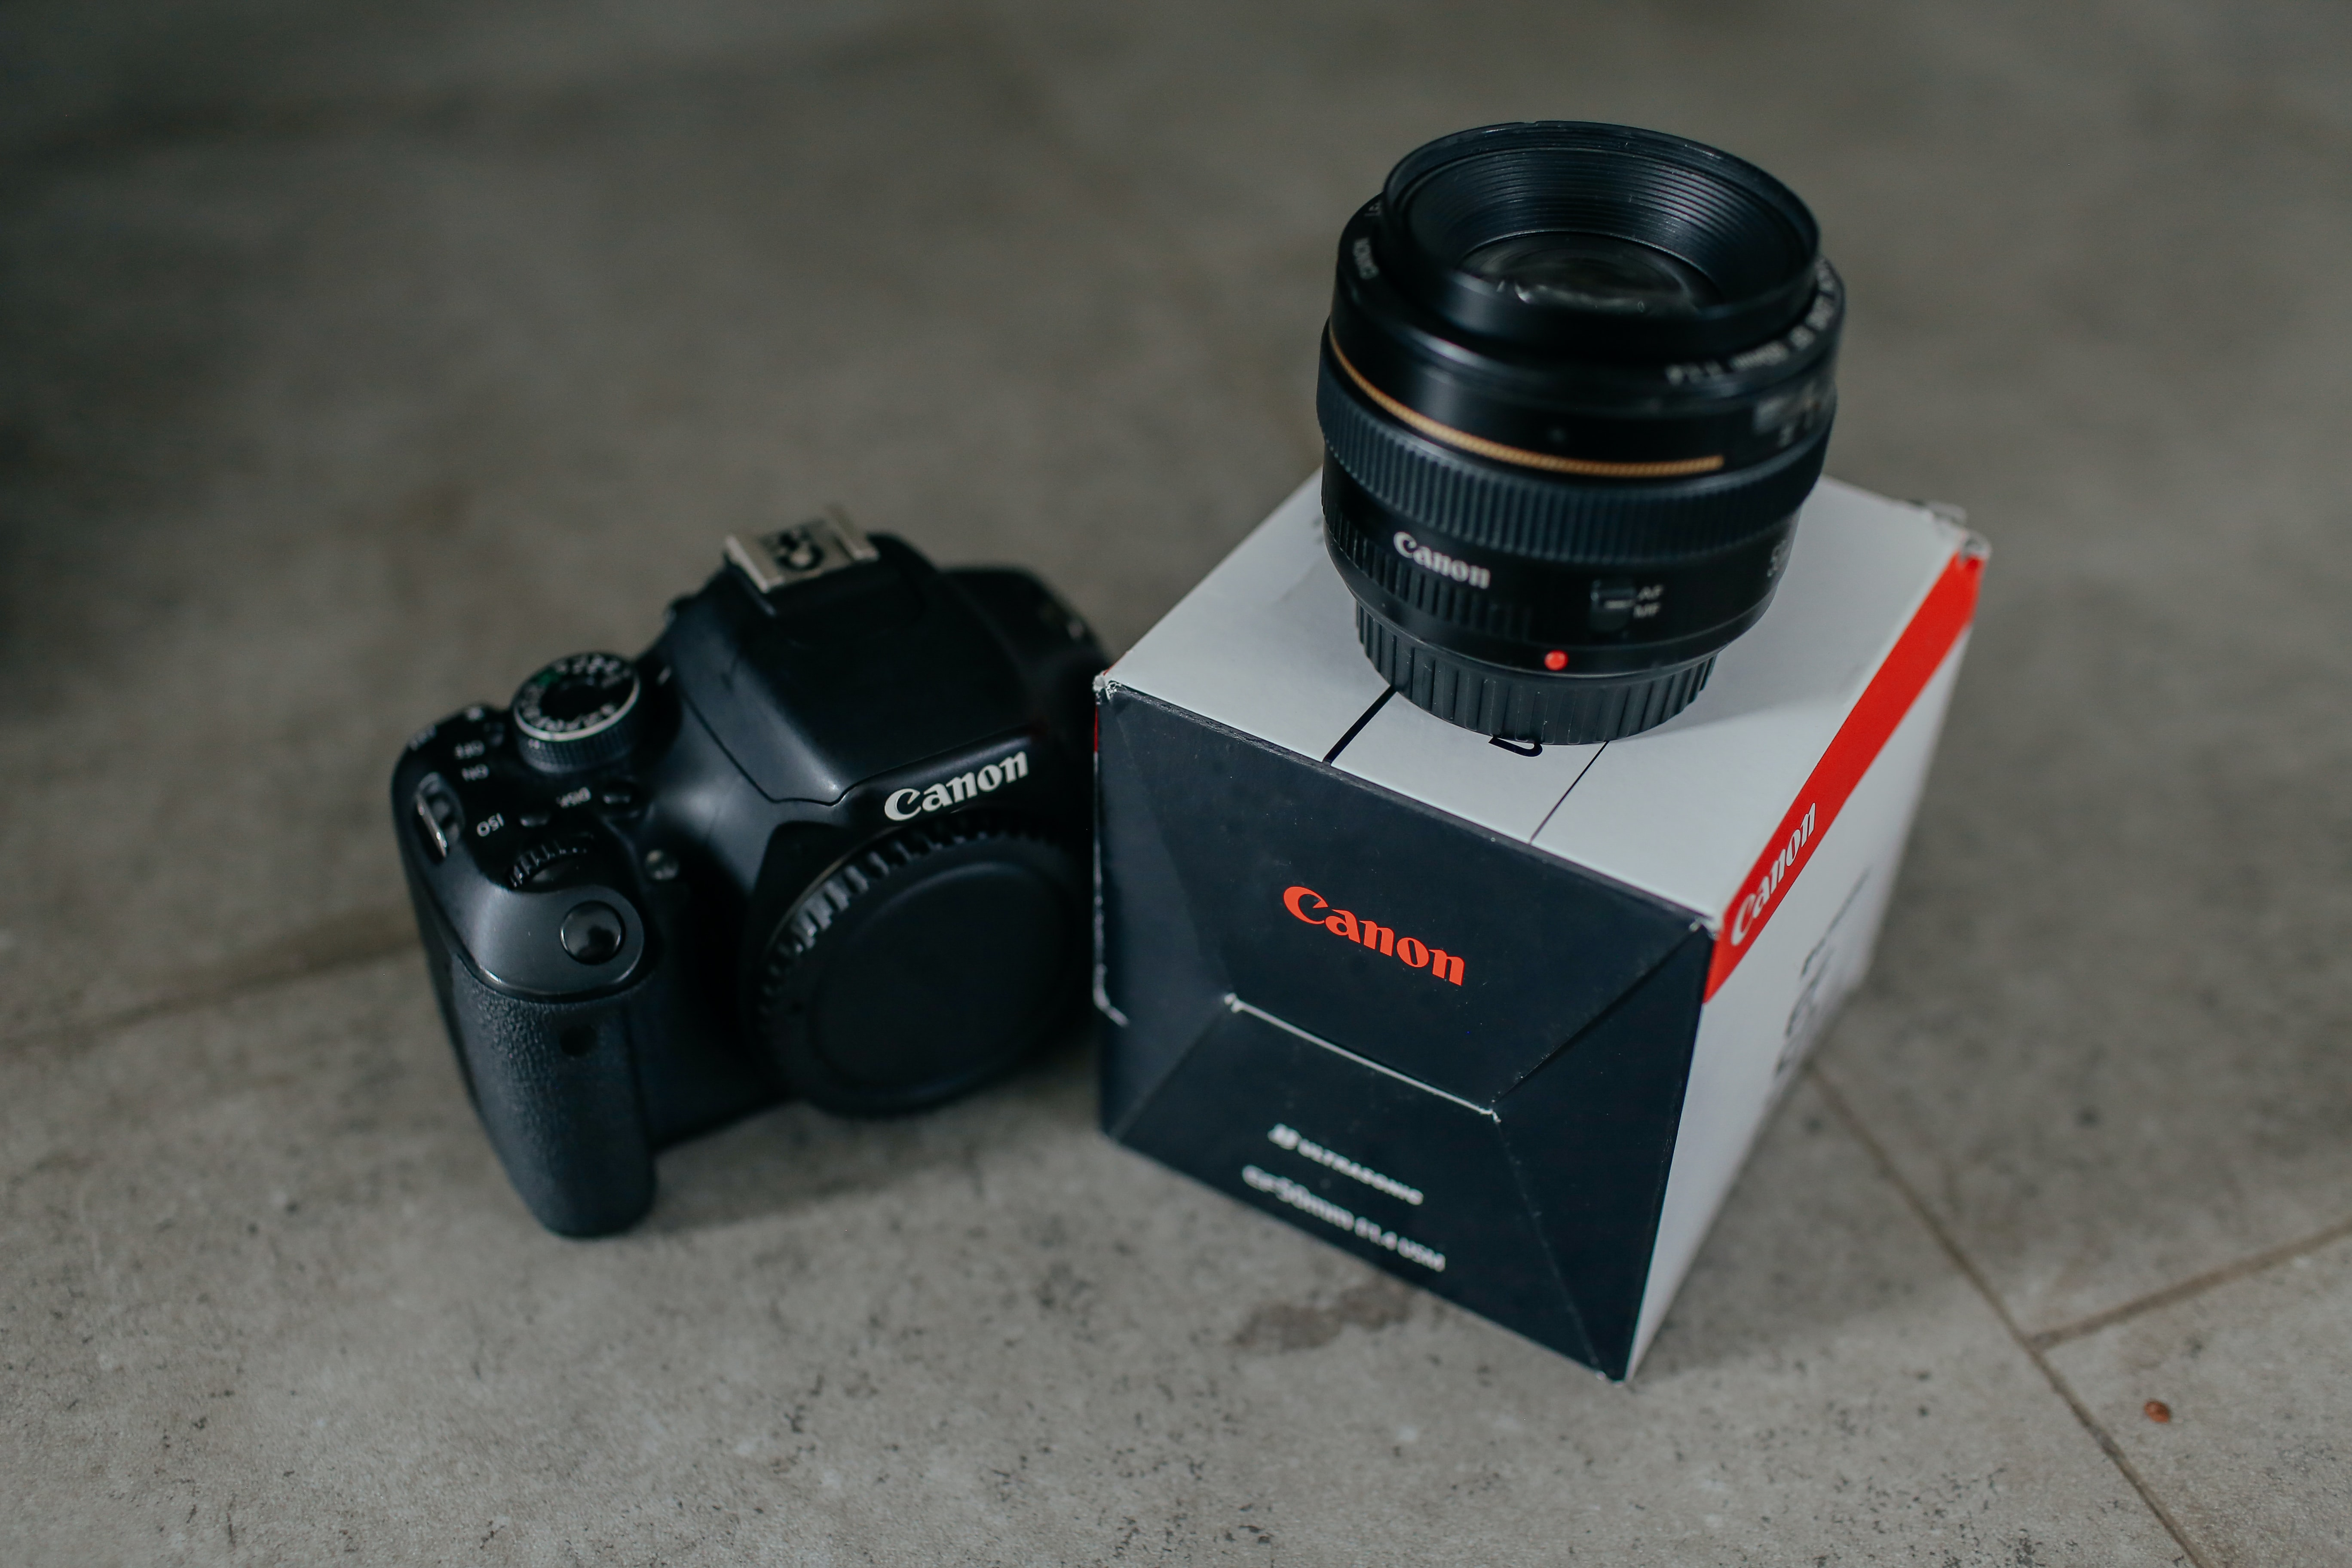 Canon DSLR body with its lens and retail box